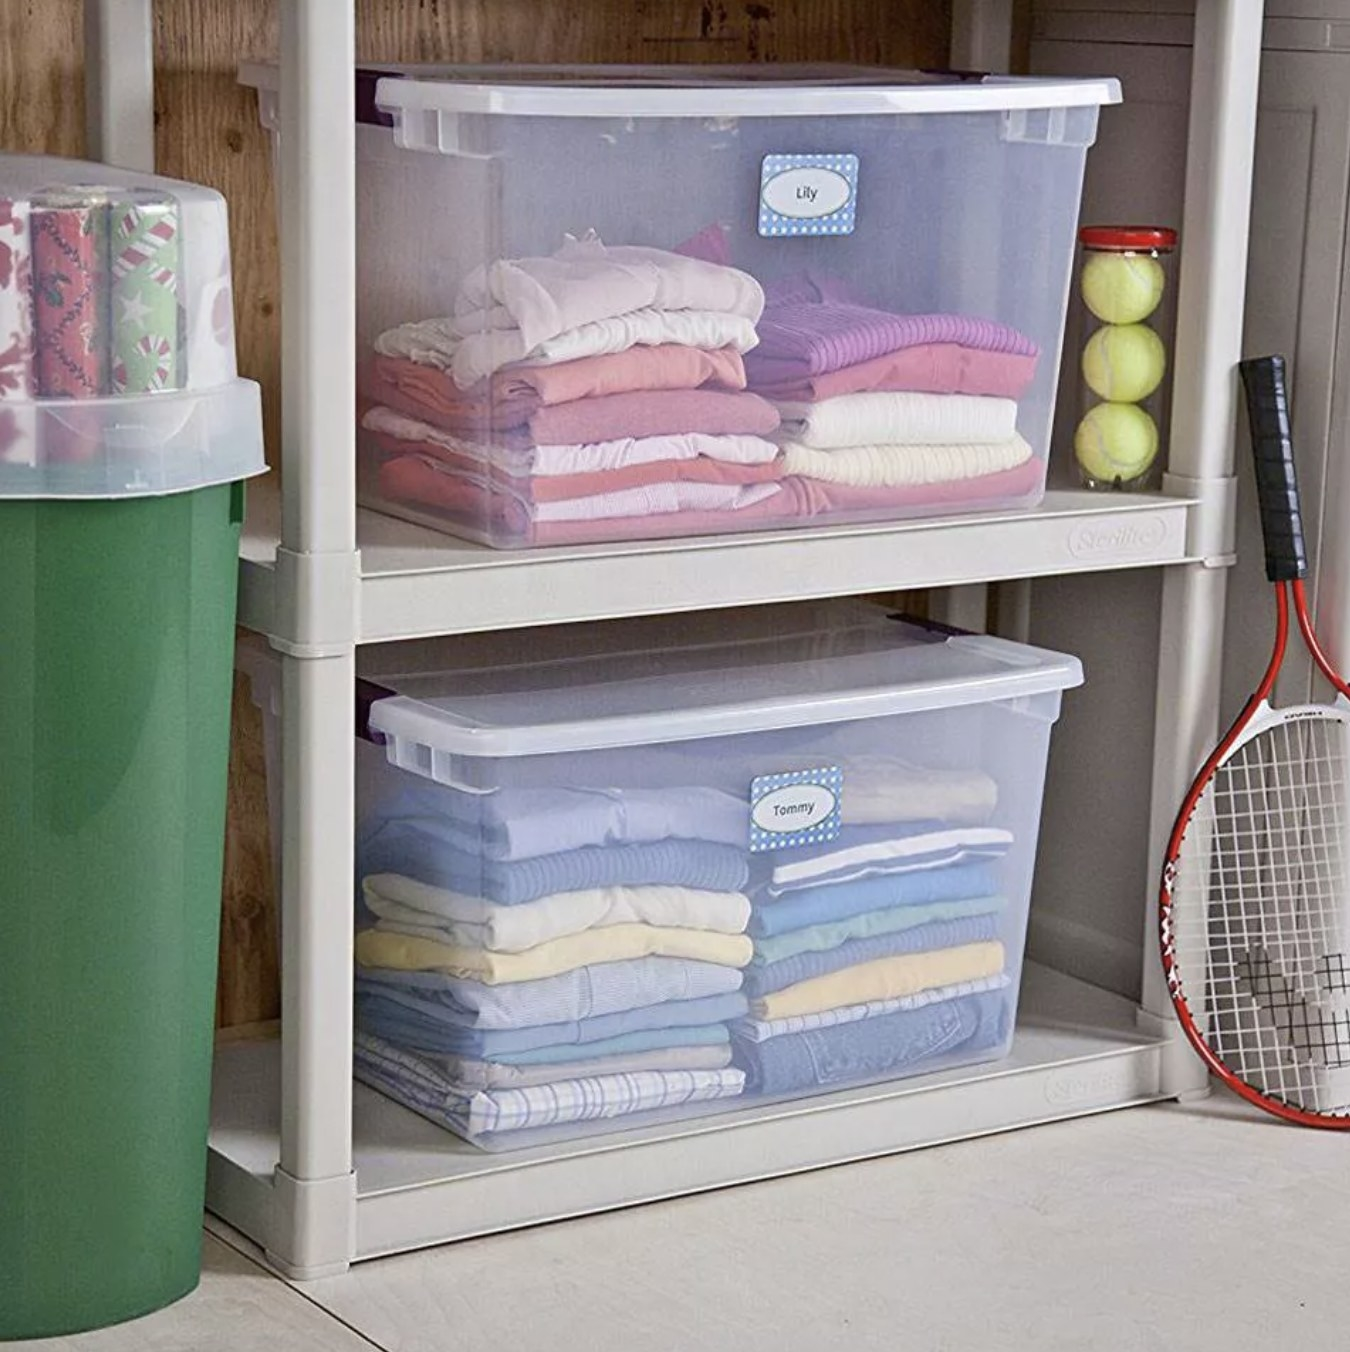 The storage containers on shelves